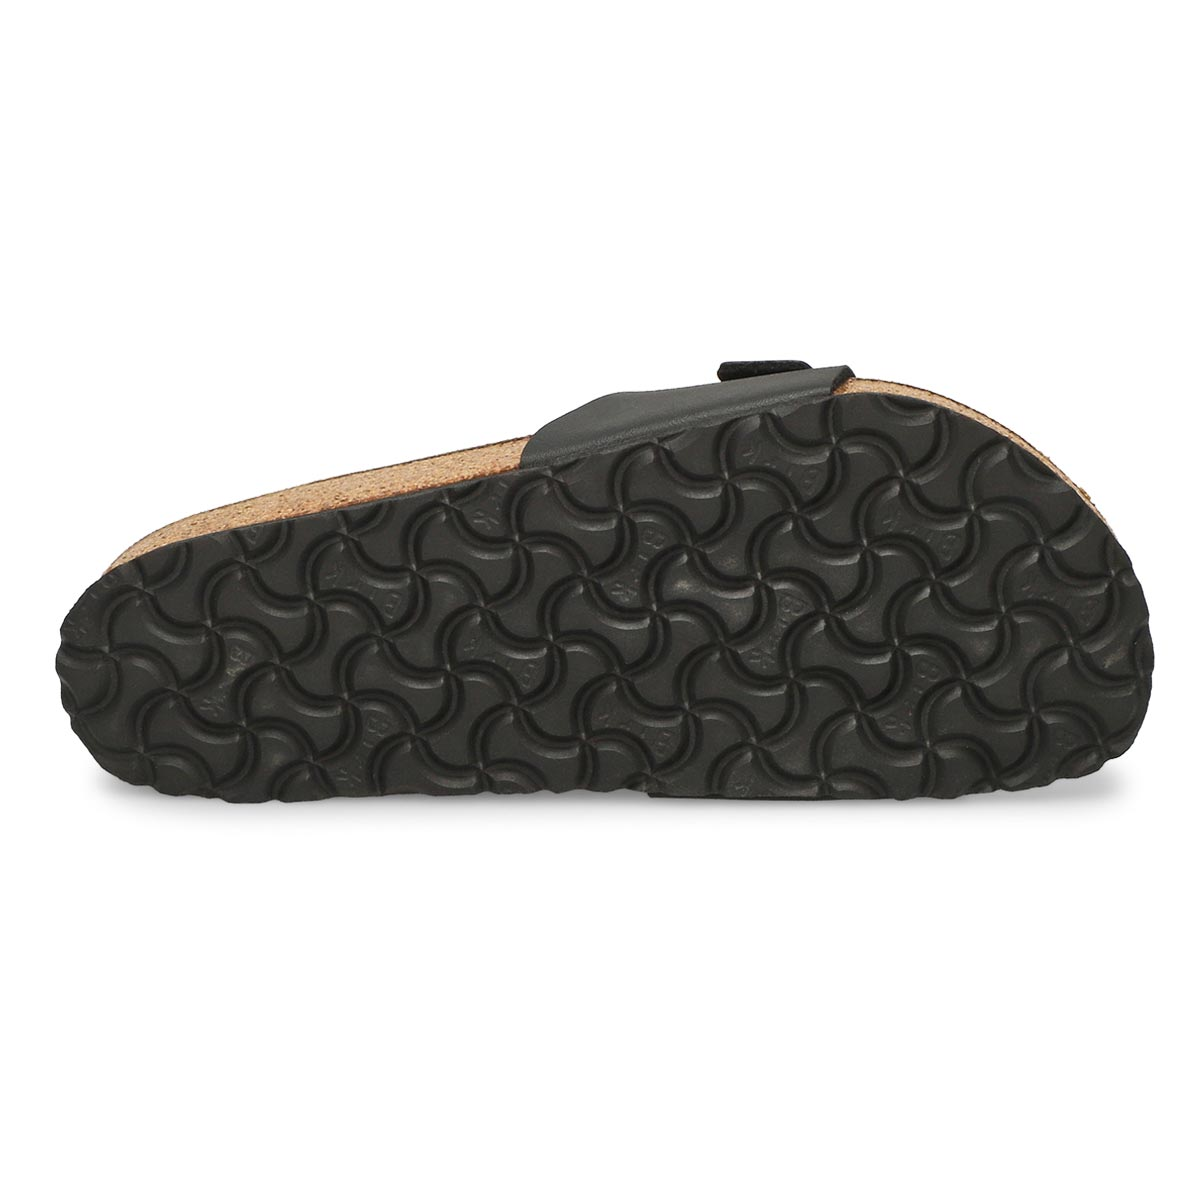 Lds Madrid black 1 strap sandal